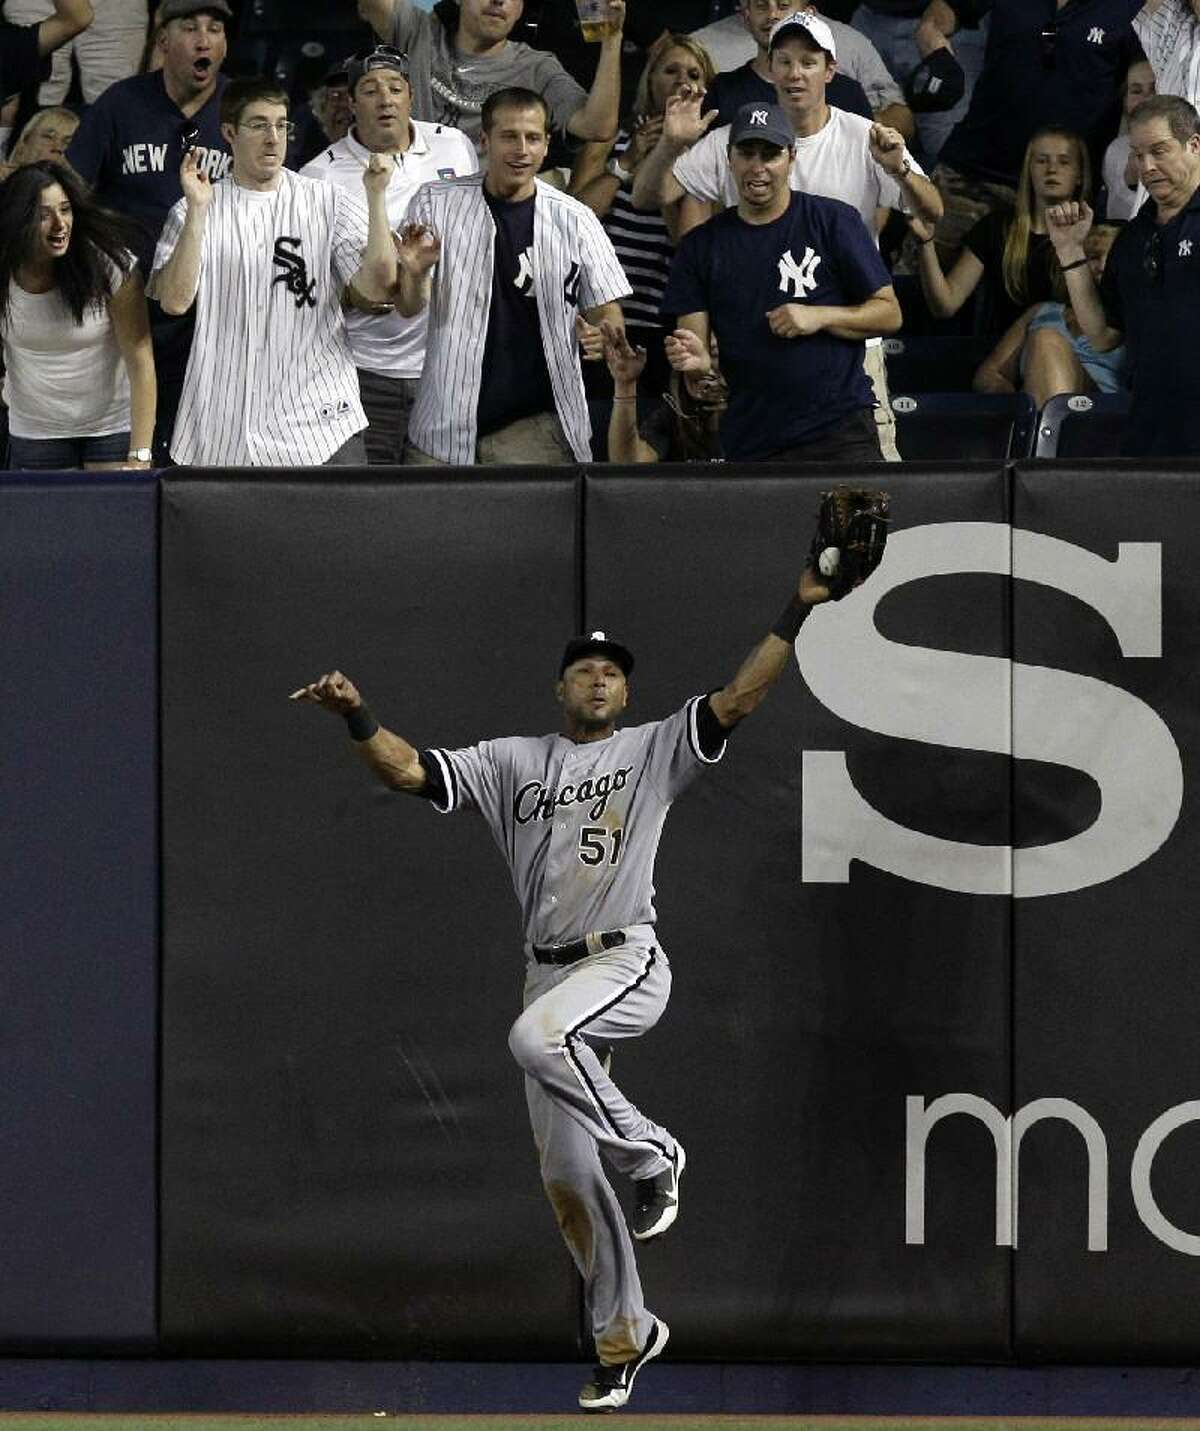 ASSOCIATED PRESS Chicago White Sox right fielder Alex Rios, bottom, catches New York Yankees Derek Jeter's ninth-inning fly-out with a man on first for the final out in the White Sox's 4-3 victory on Thursday at Yankee Stadium in New York.